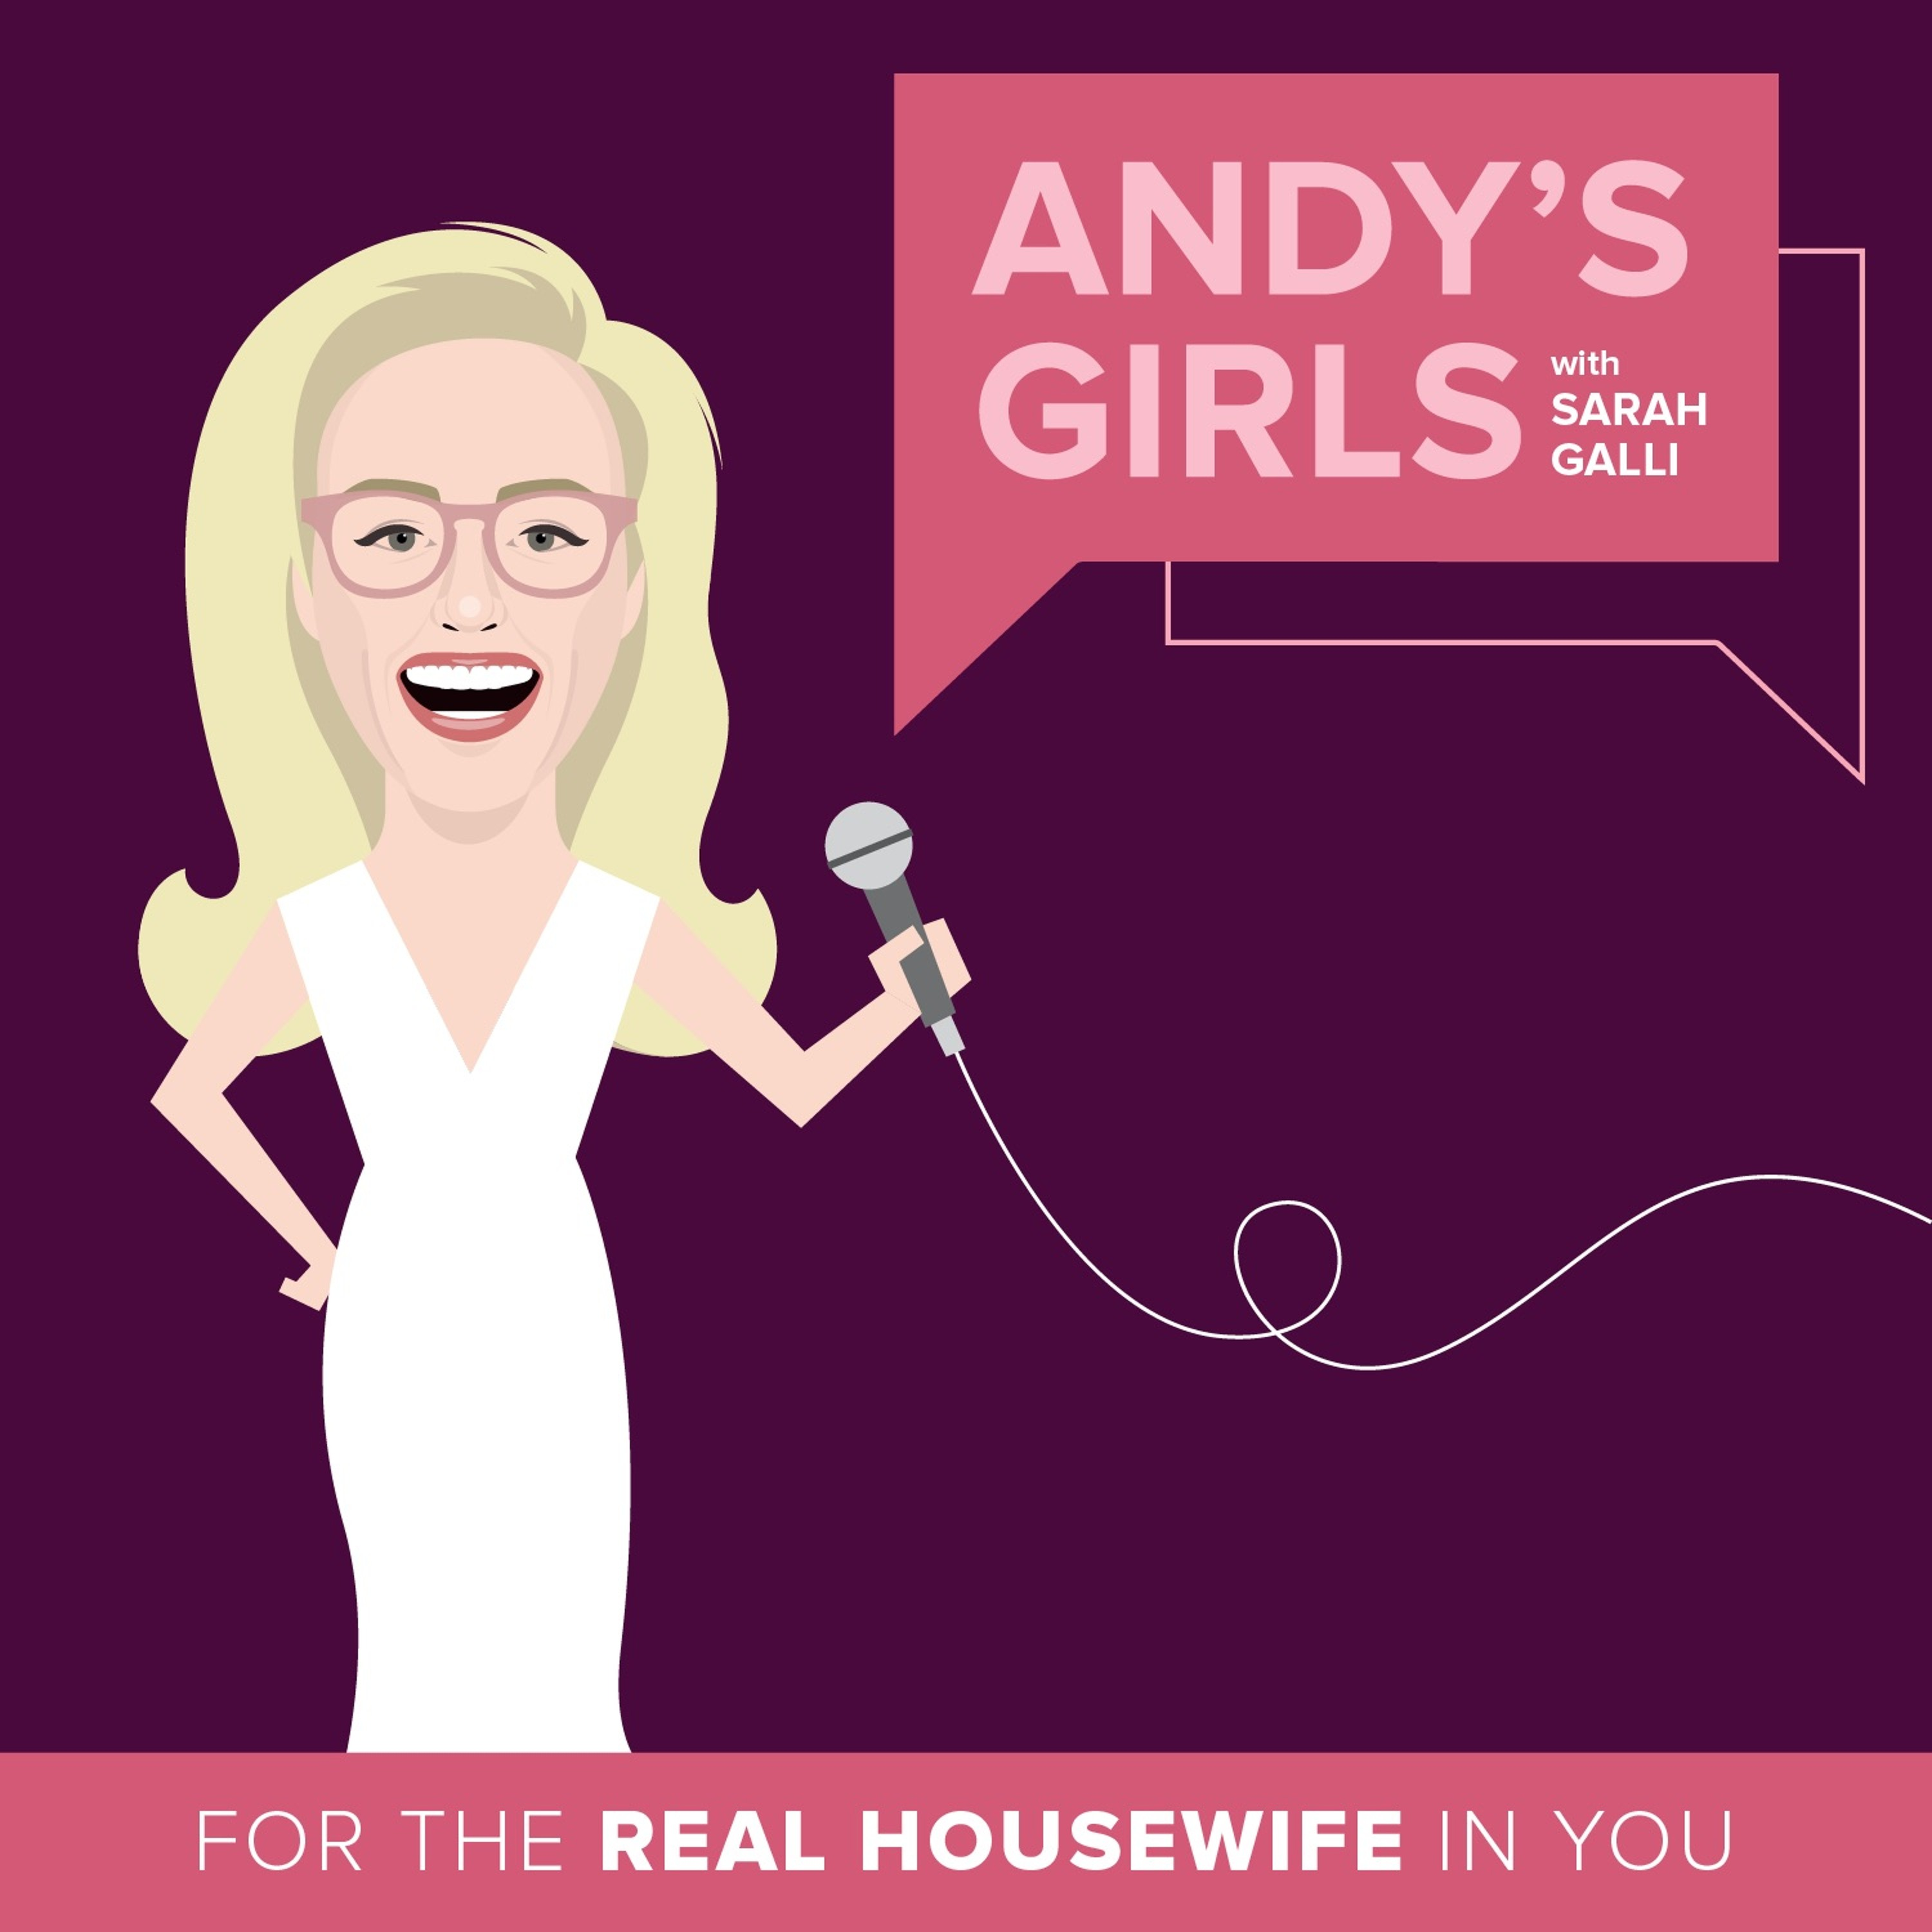 Andy's Girls: A Real Housewives Podcast